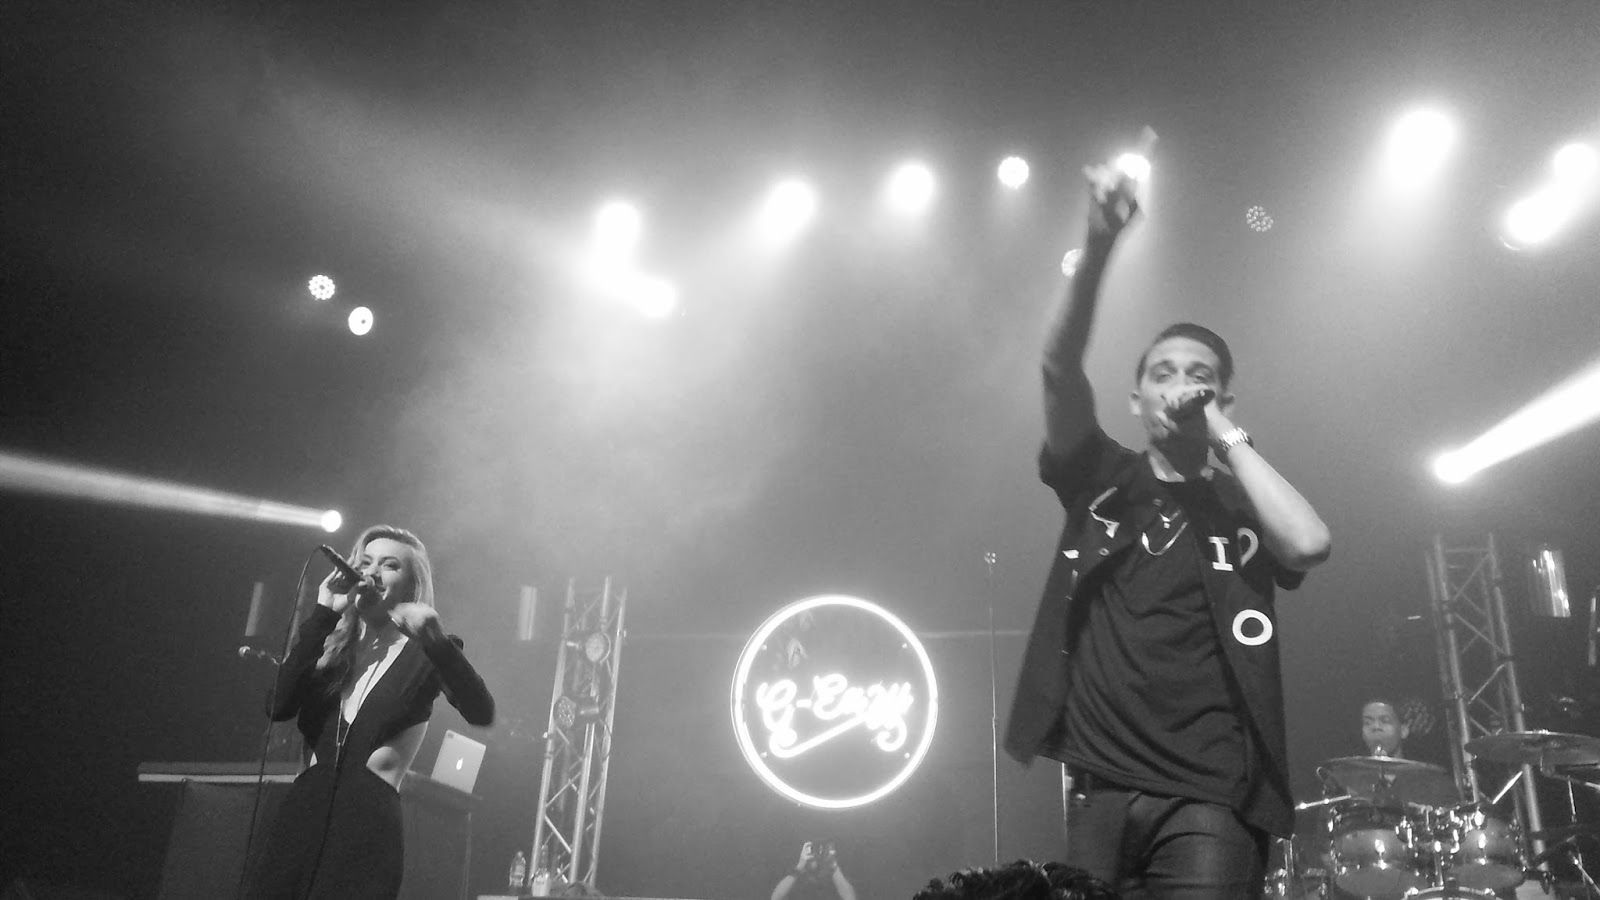 Eazy Wallpaper These Things Happen G eazy and devon baldwin 1600x900